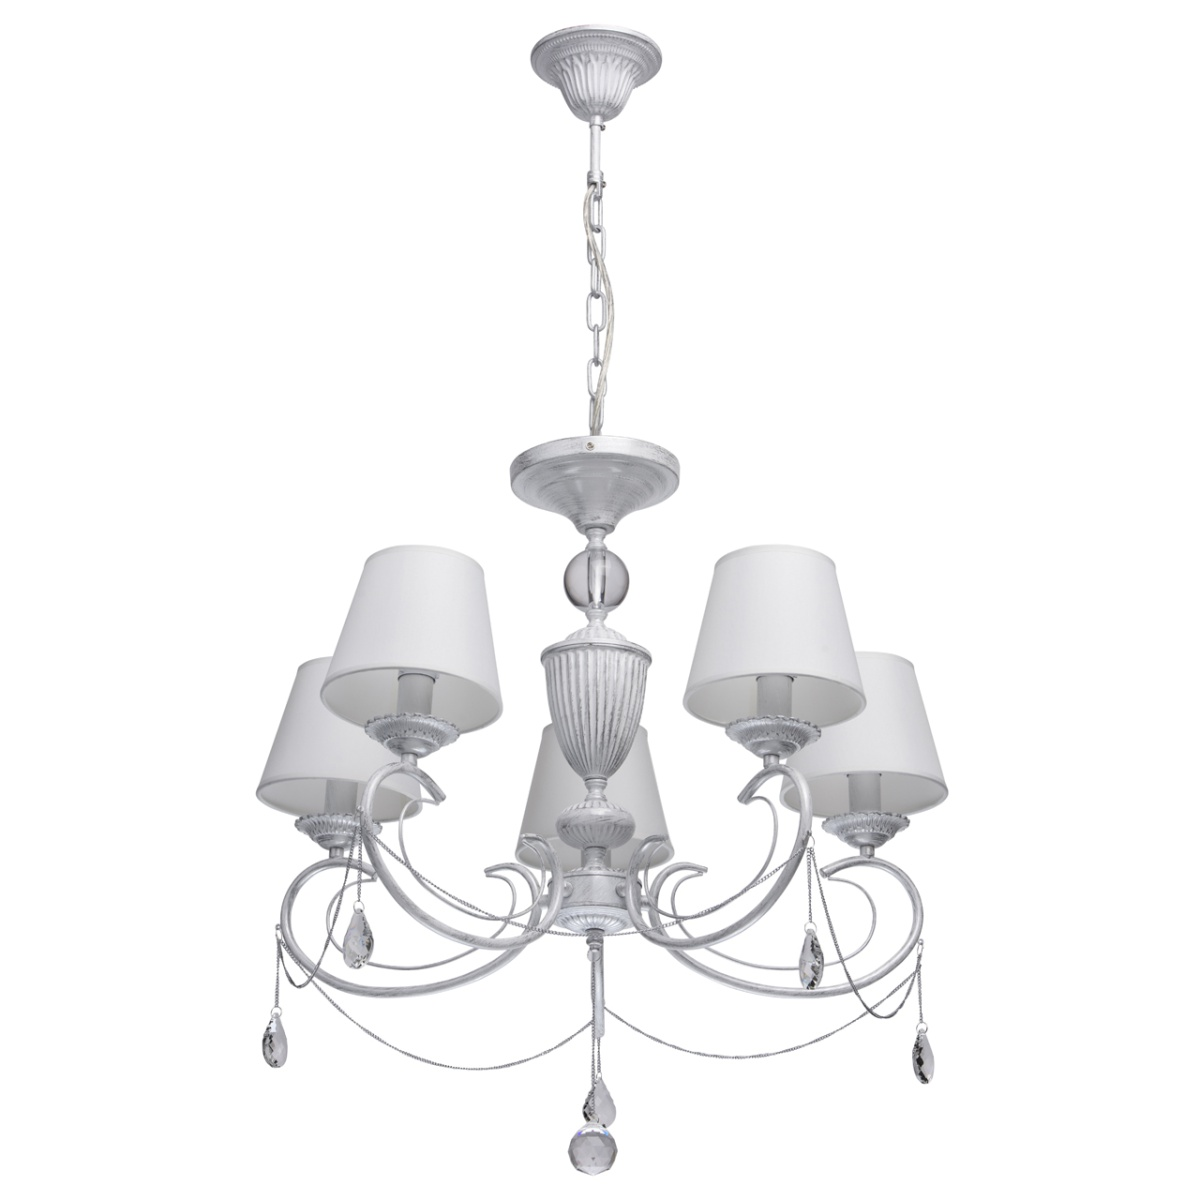 Lustra MW-Light Elegance 684010805